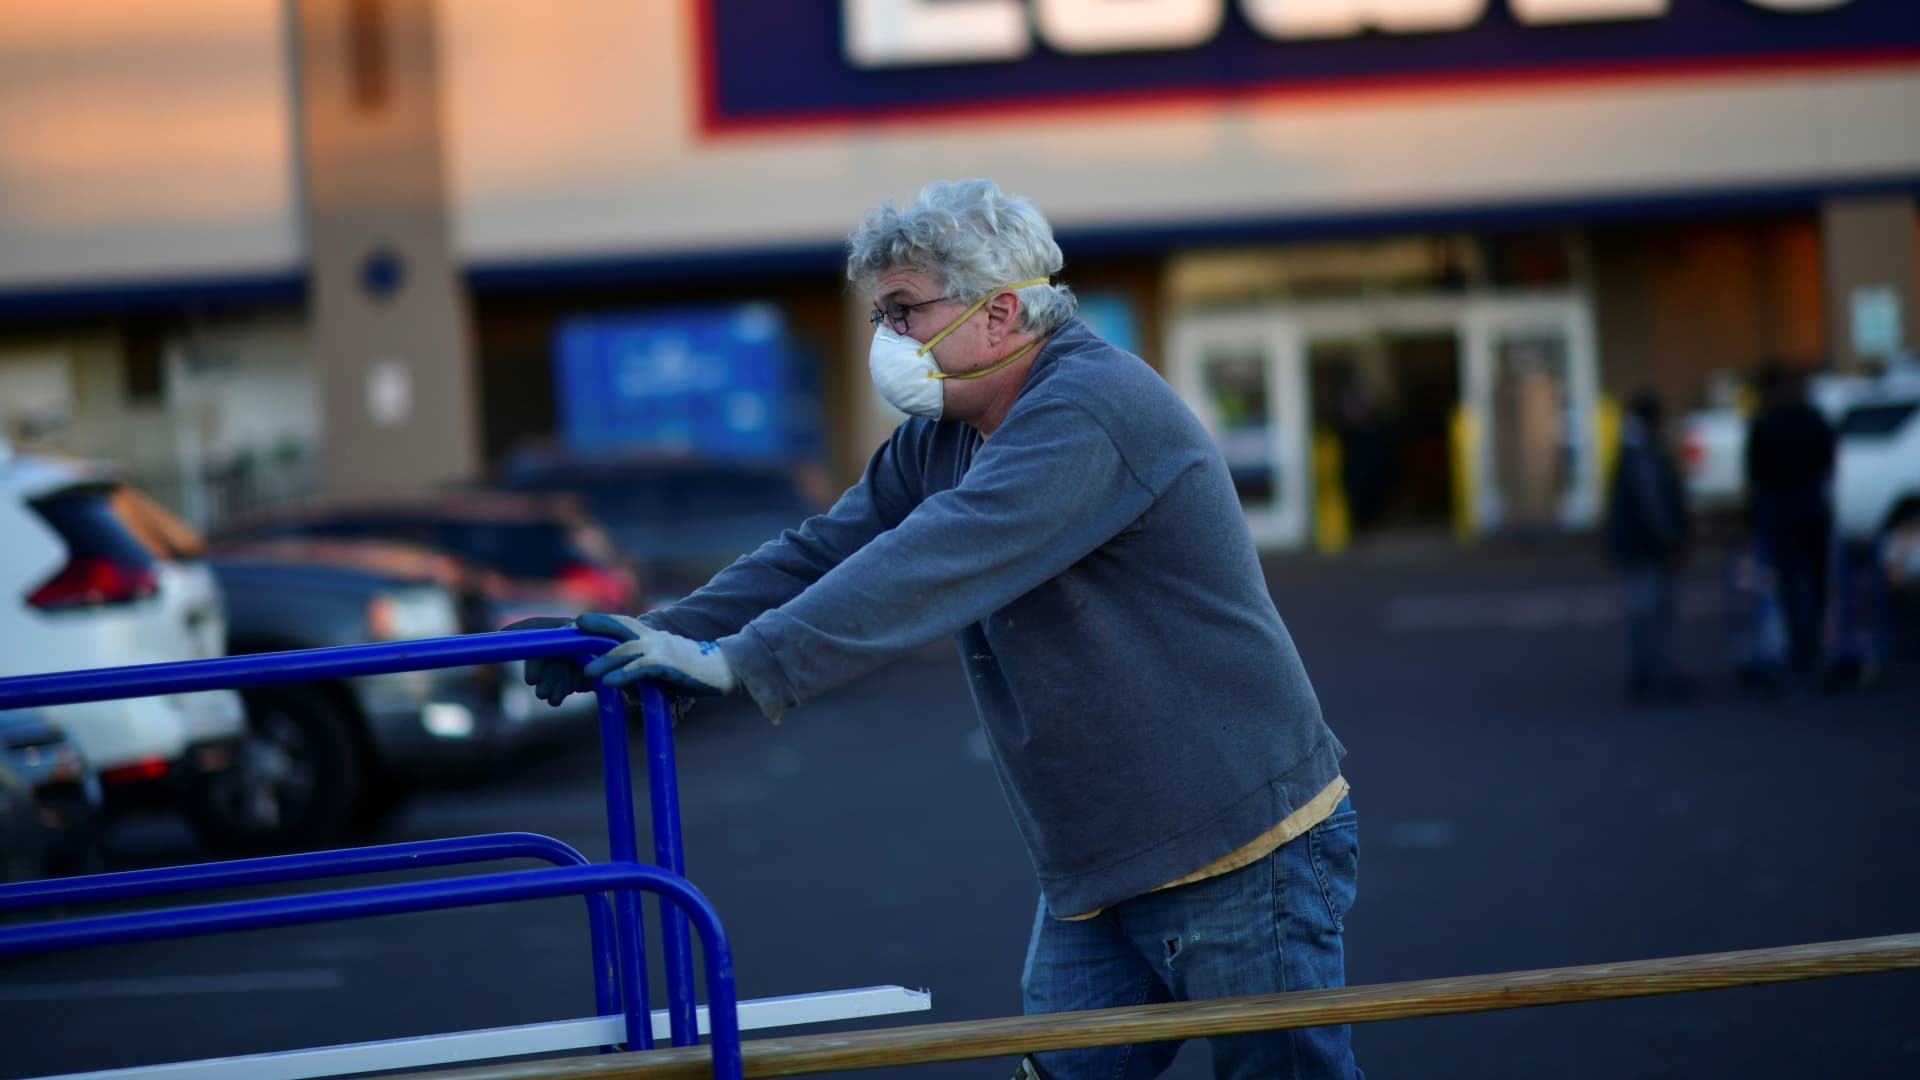 A shopper departs after visiting a Lowe's hardware store in Philadelphia, Pennsylvania, November 4, 2020.